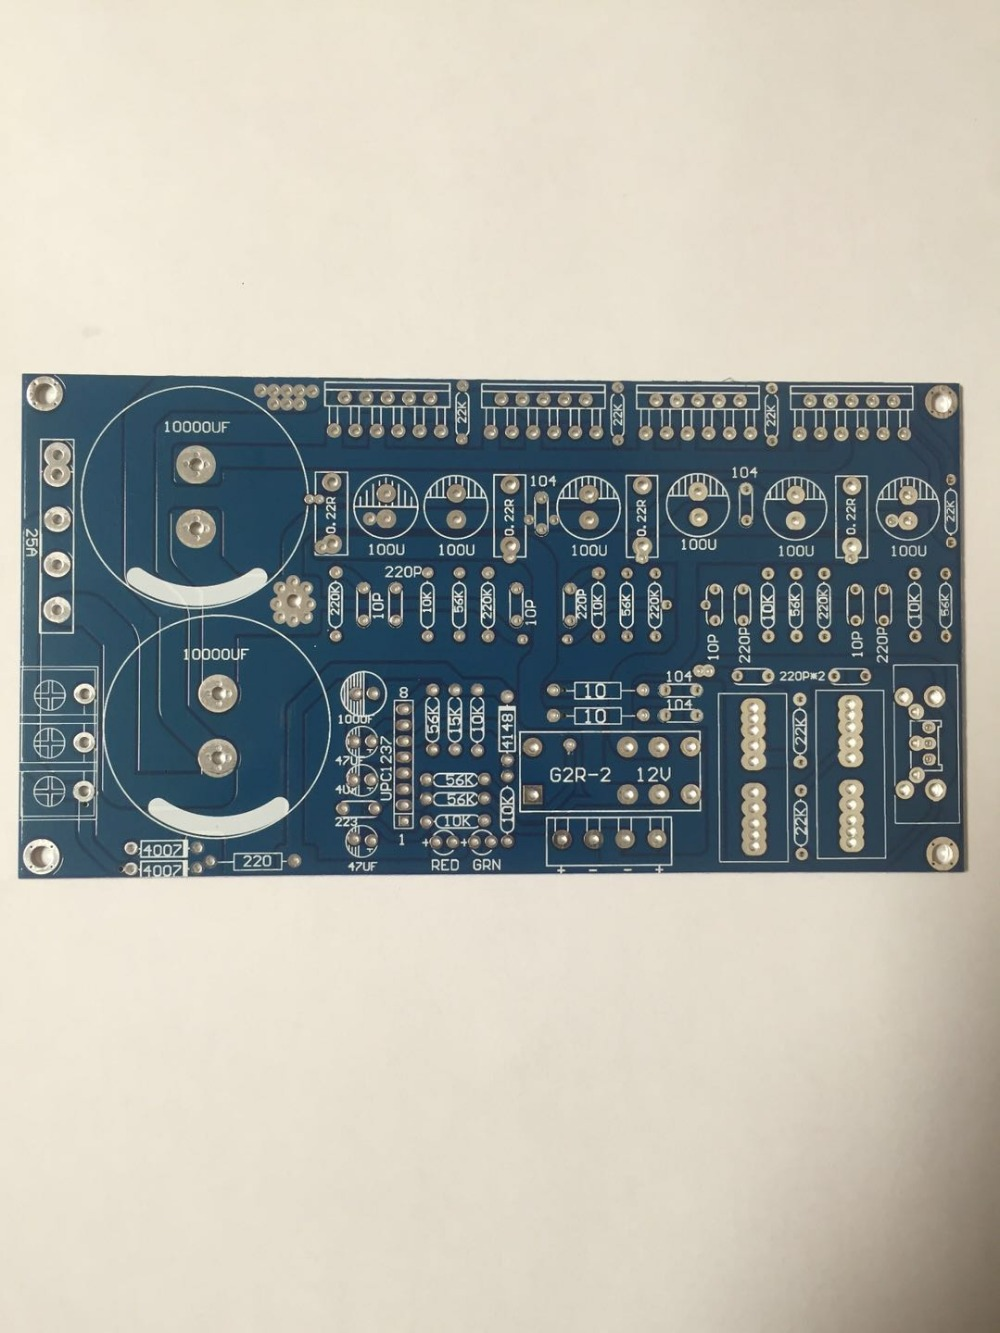 Fannyda Lm3886 Dual Parallel Pure Back Stage Power Amplifiers Strip High Amplifier Circuit Using Integrated Protection Circuits Board Pcb Blank In From Consumer Electronics On